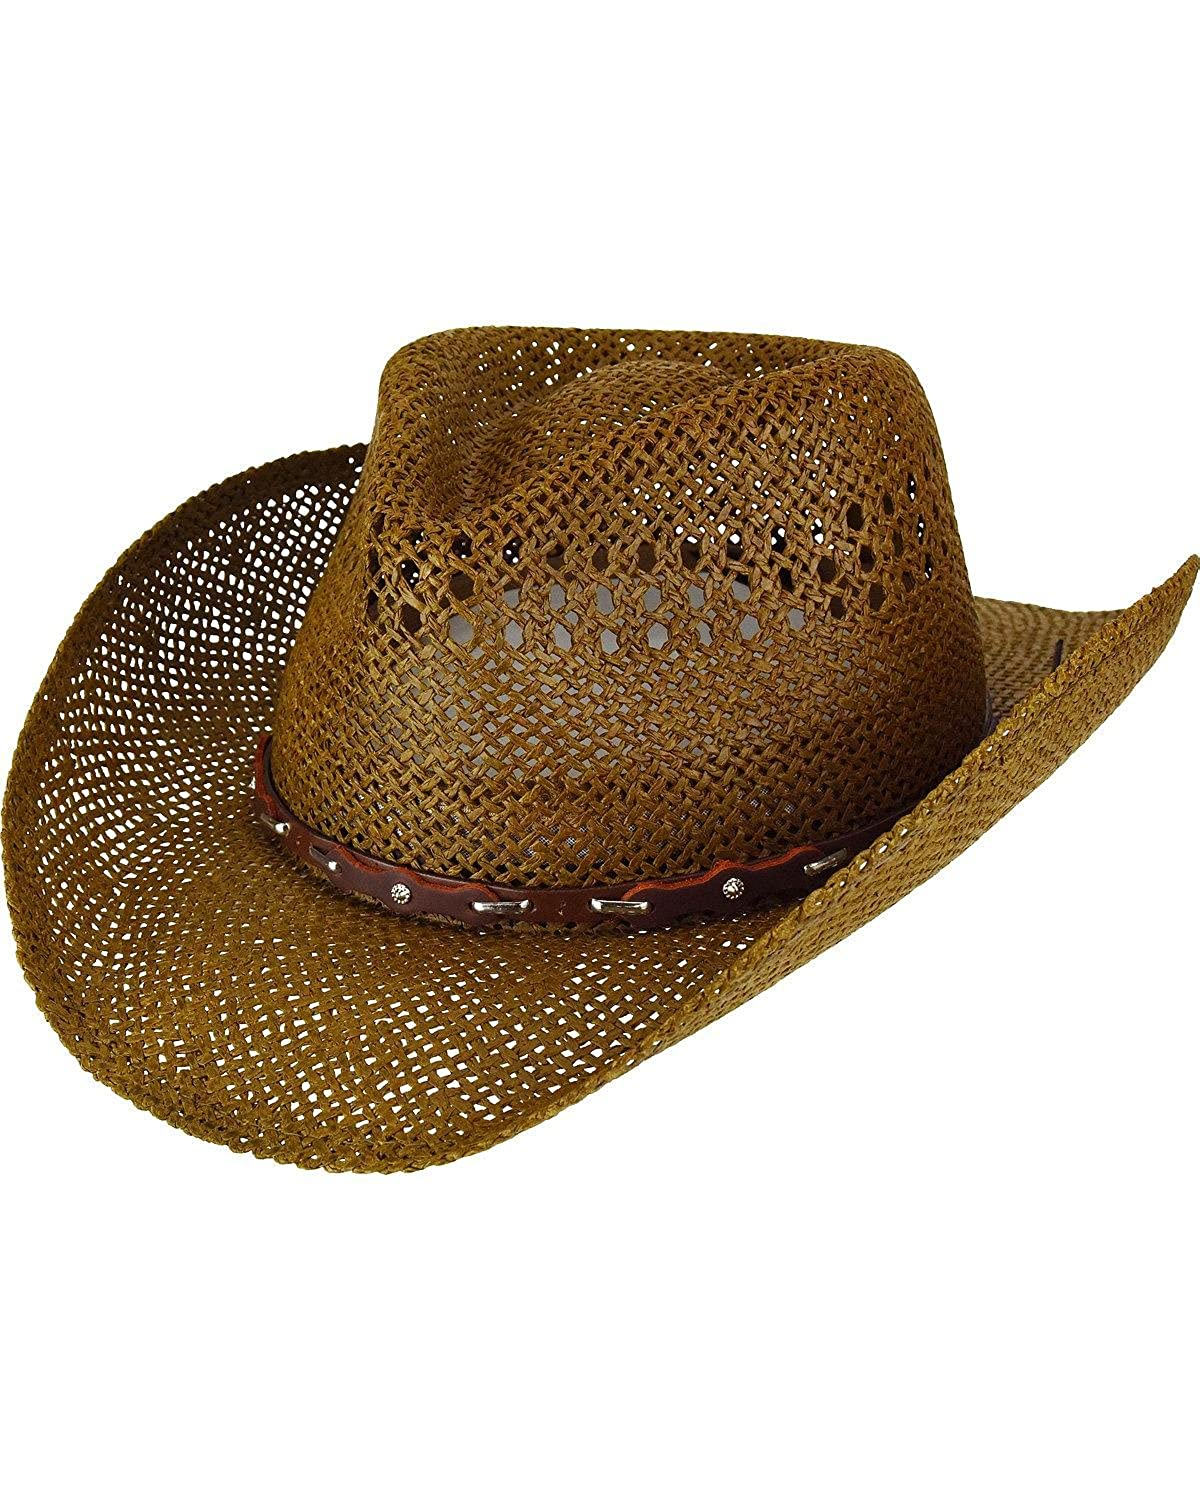 c182f5559 Eddy Bros. Men's Mingo Apache Leather Band Cowboy Hat - S17e01 at ...